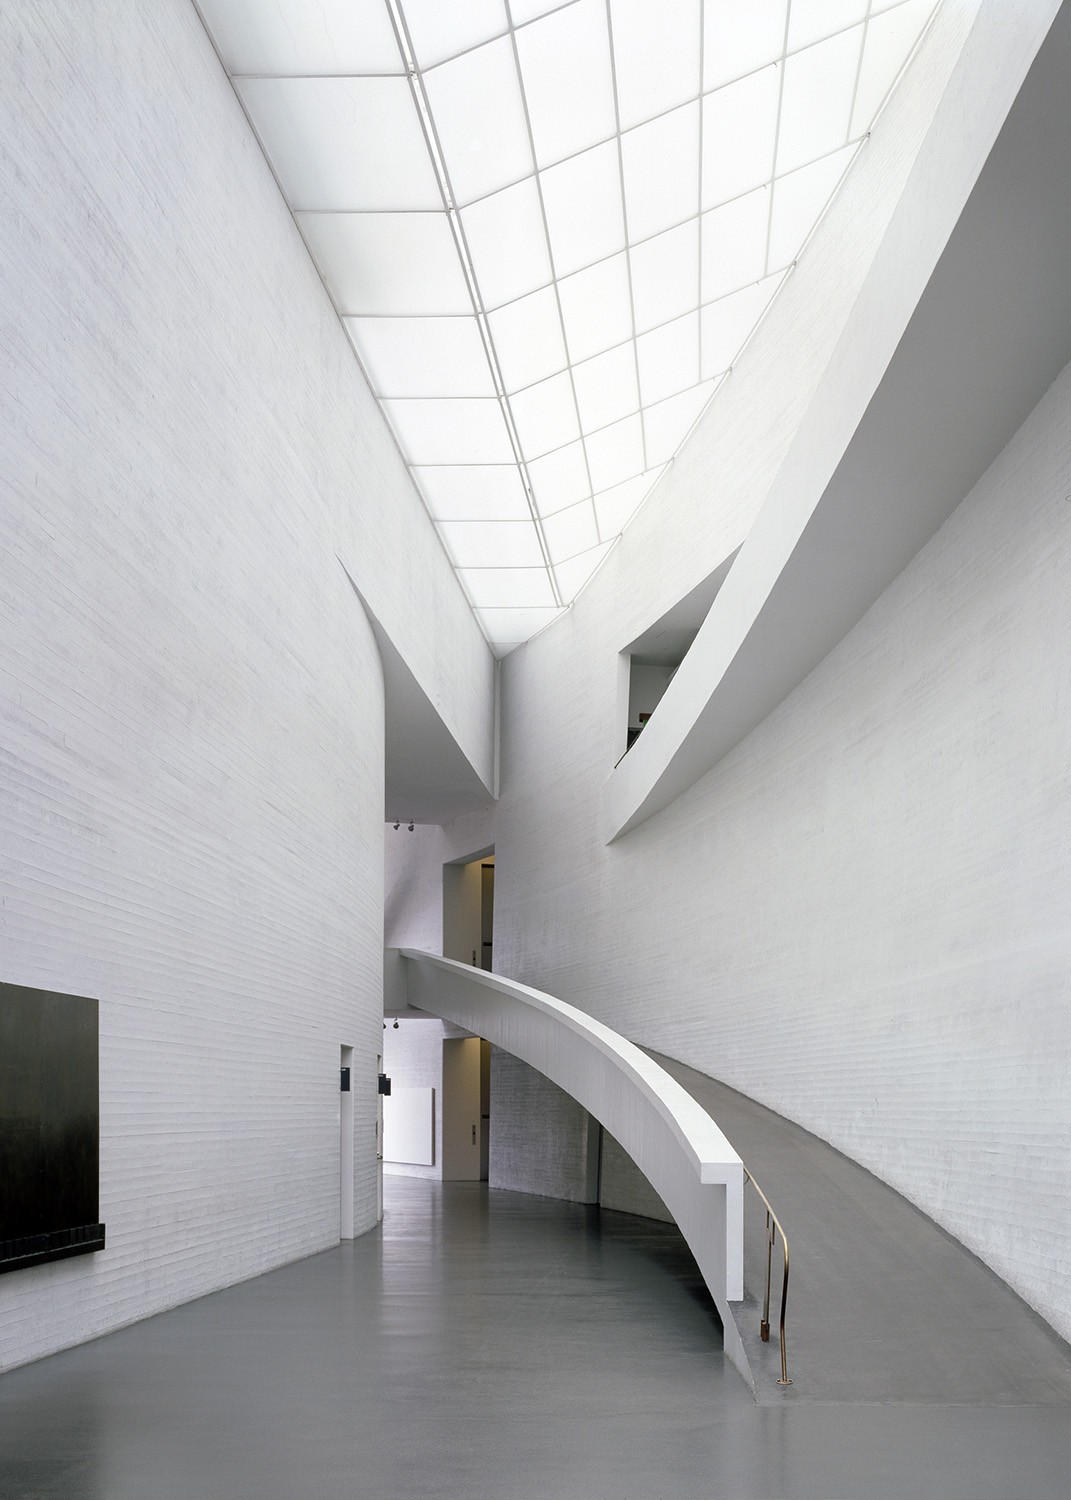 https://stevenholl.sfo2.digitaloceanspaces.com/uploads/projects/project-images/StevenHollArchitects_Kiasma_LobbyPhotoRecent_WV.jpg